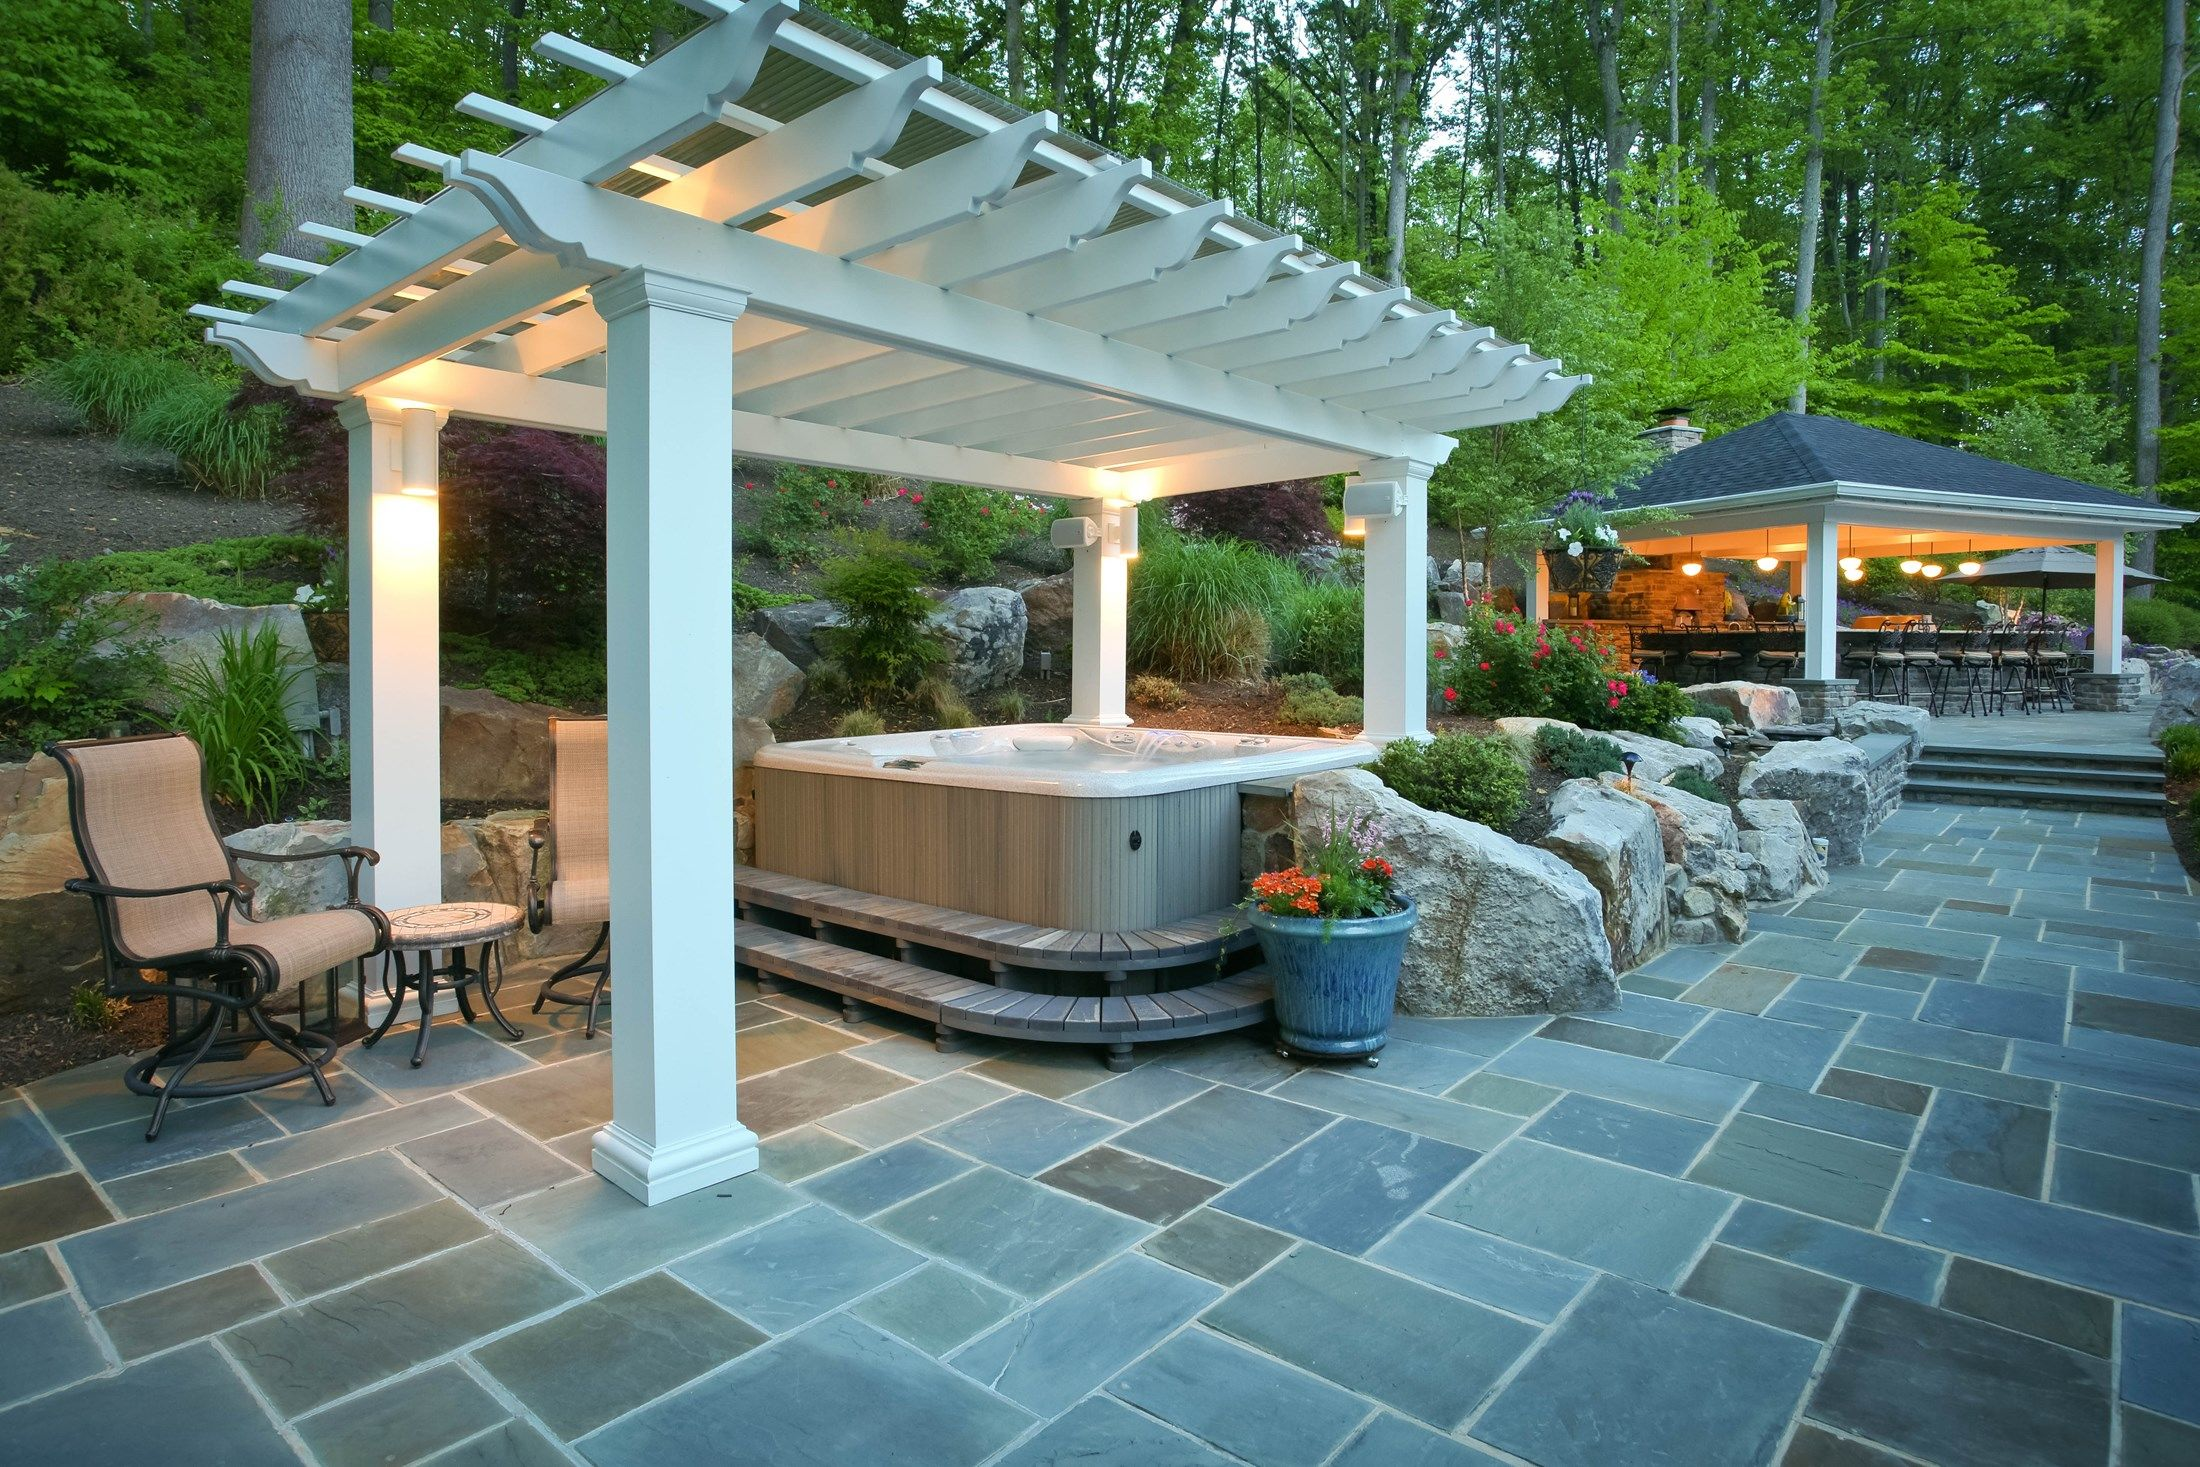 Ultimate backyard - Picture 1576